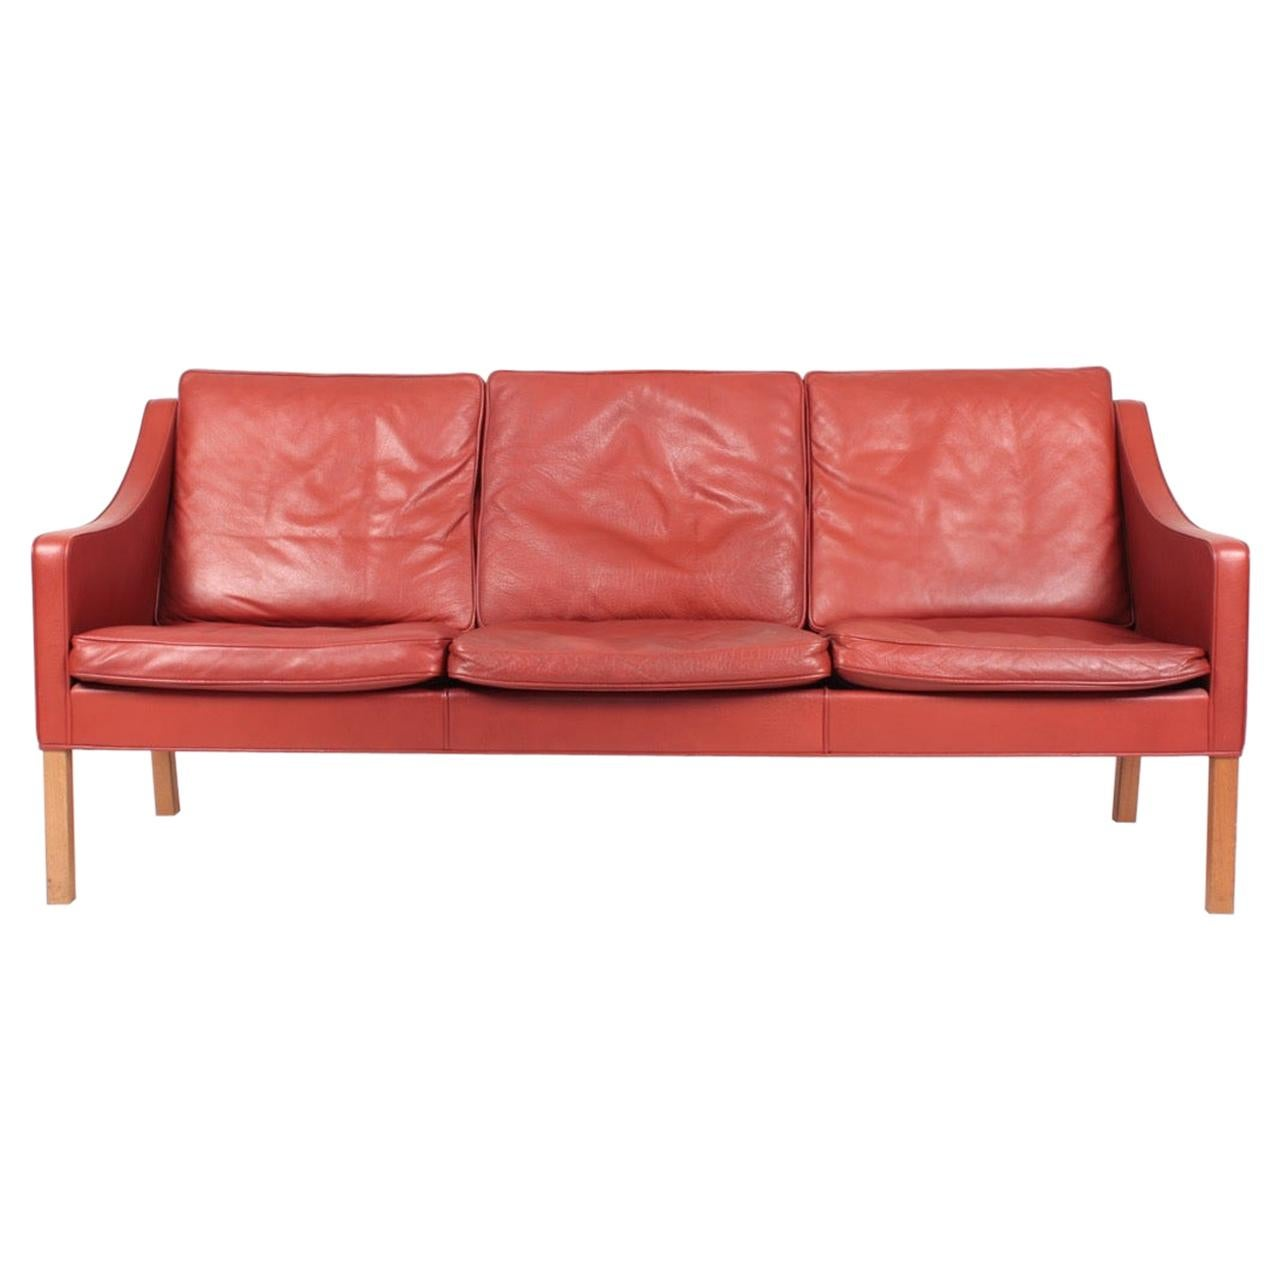 Danish Midcentury Sofa in Patinated Leather by Børge Mogensen, 1980s